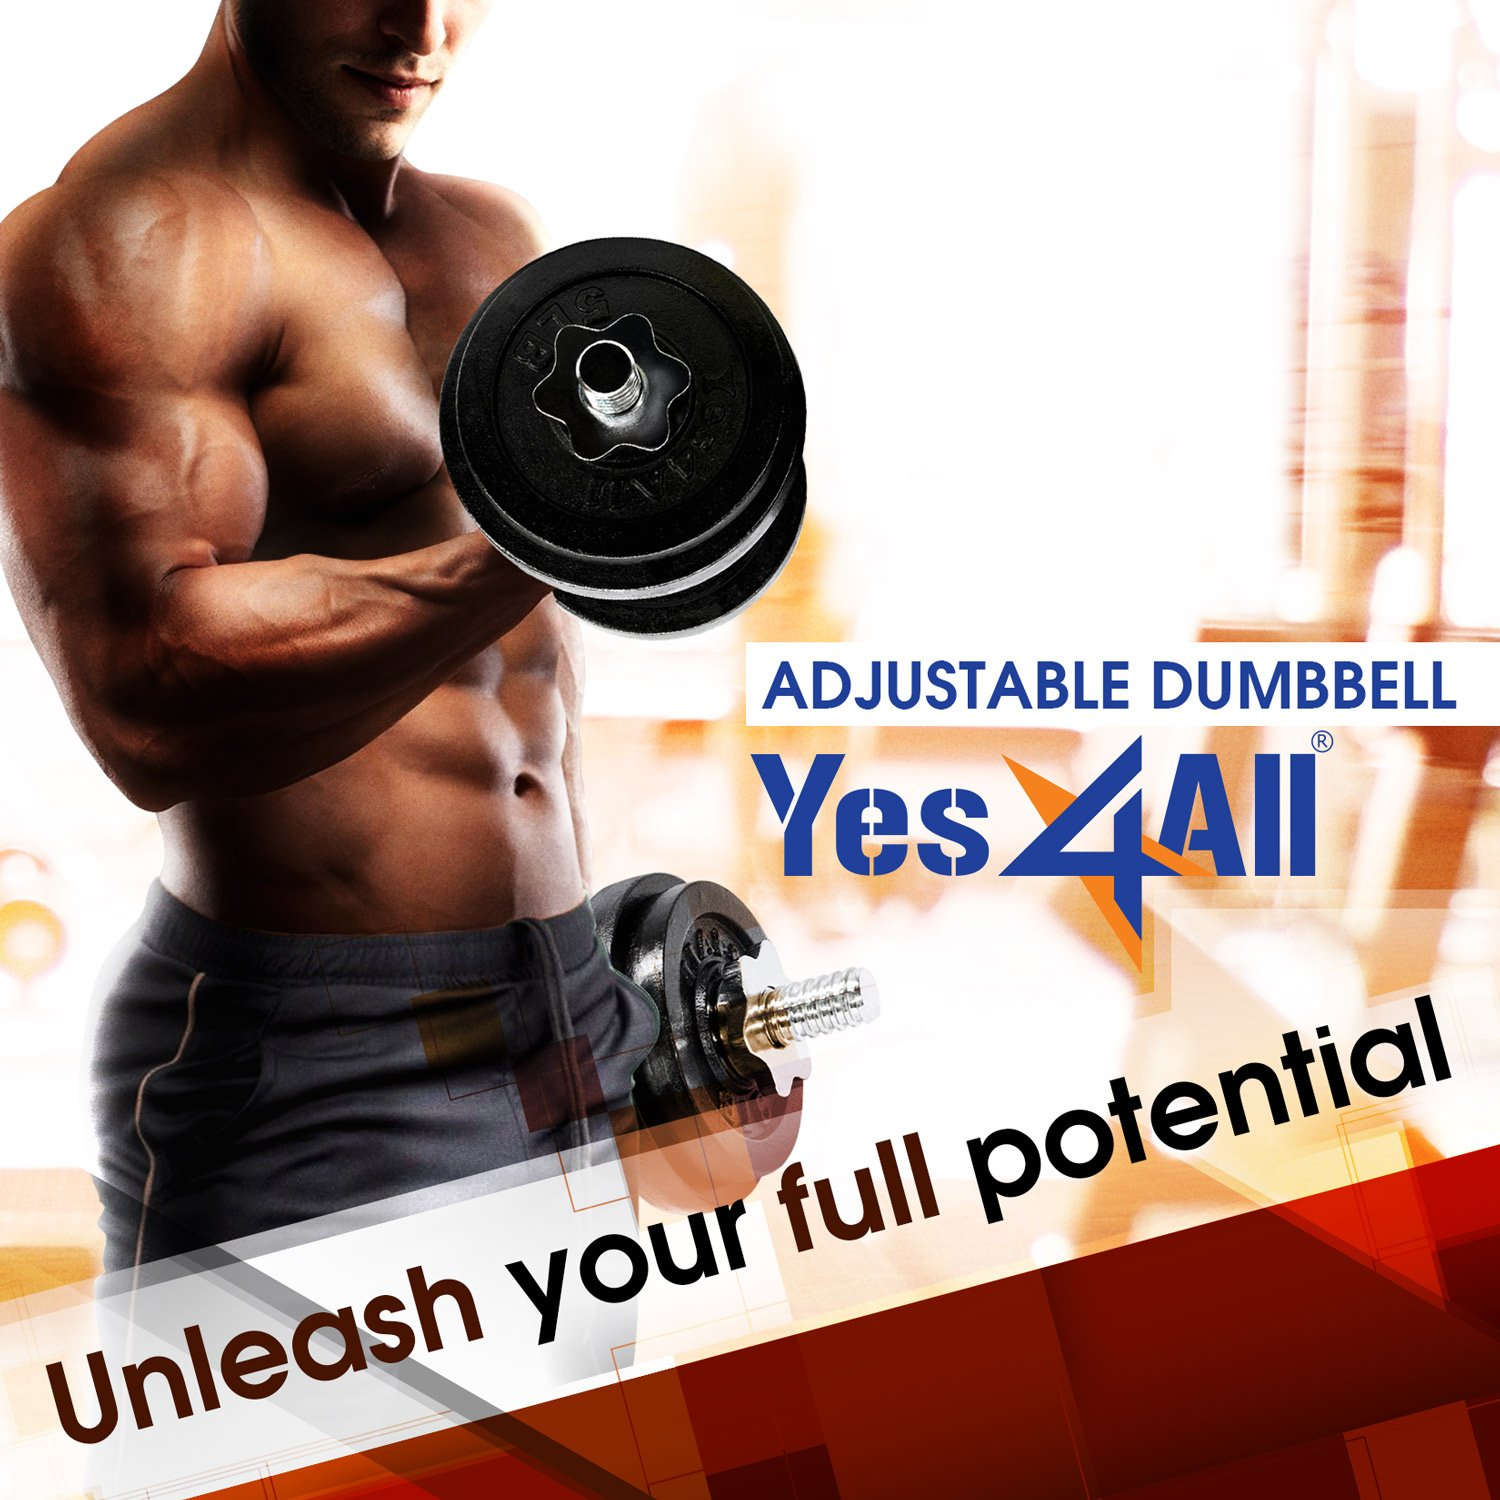 Yes4All - Mancuernas ajustables (18,1 / 22,7 / 23,8 / 27,2 / 47,6 / 90,7 kg) - D2CL: Amazon.es: Deportes y aire libre